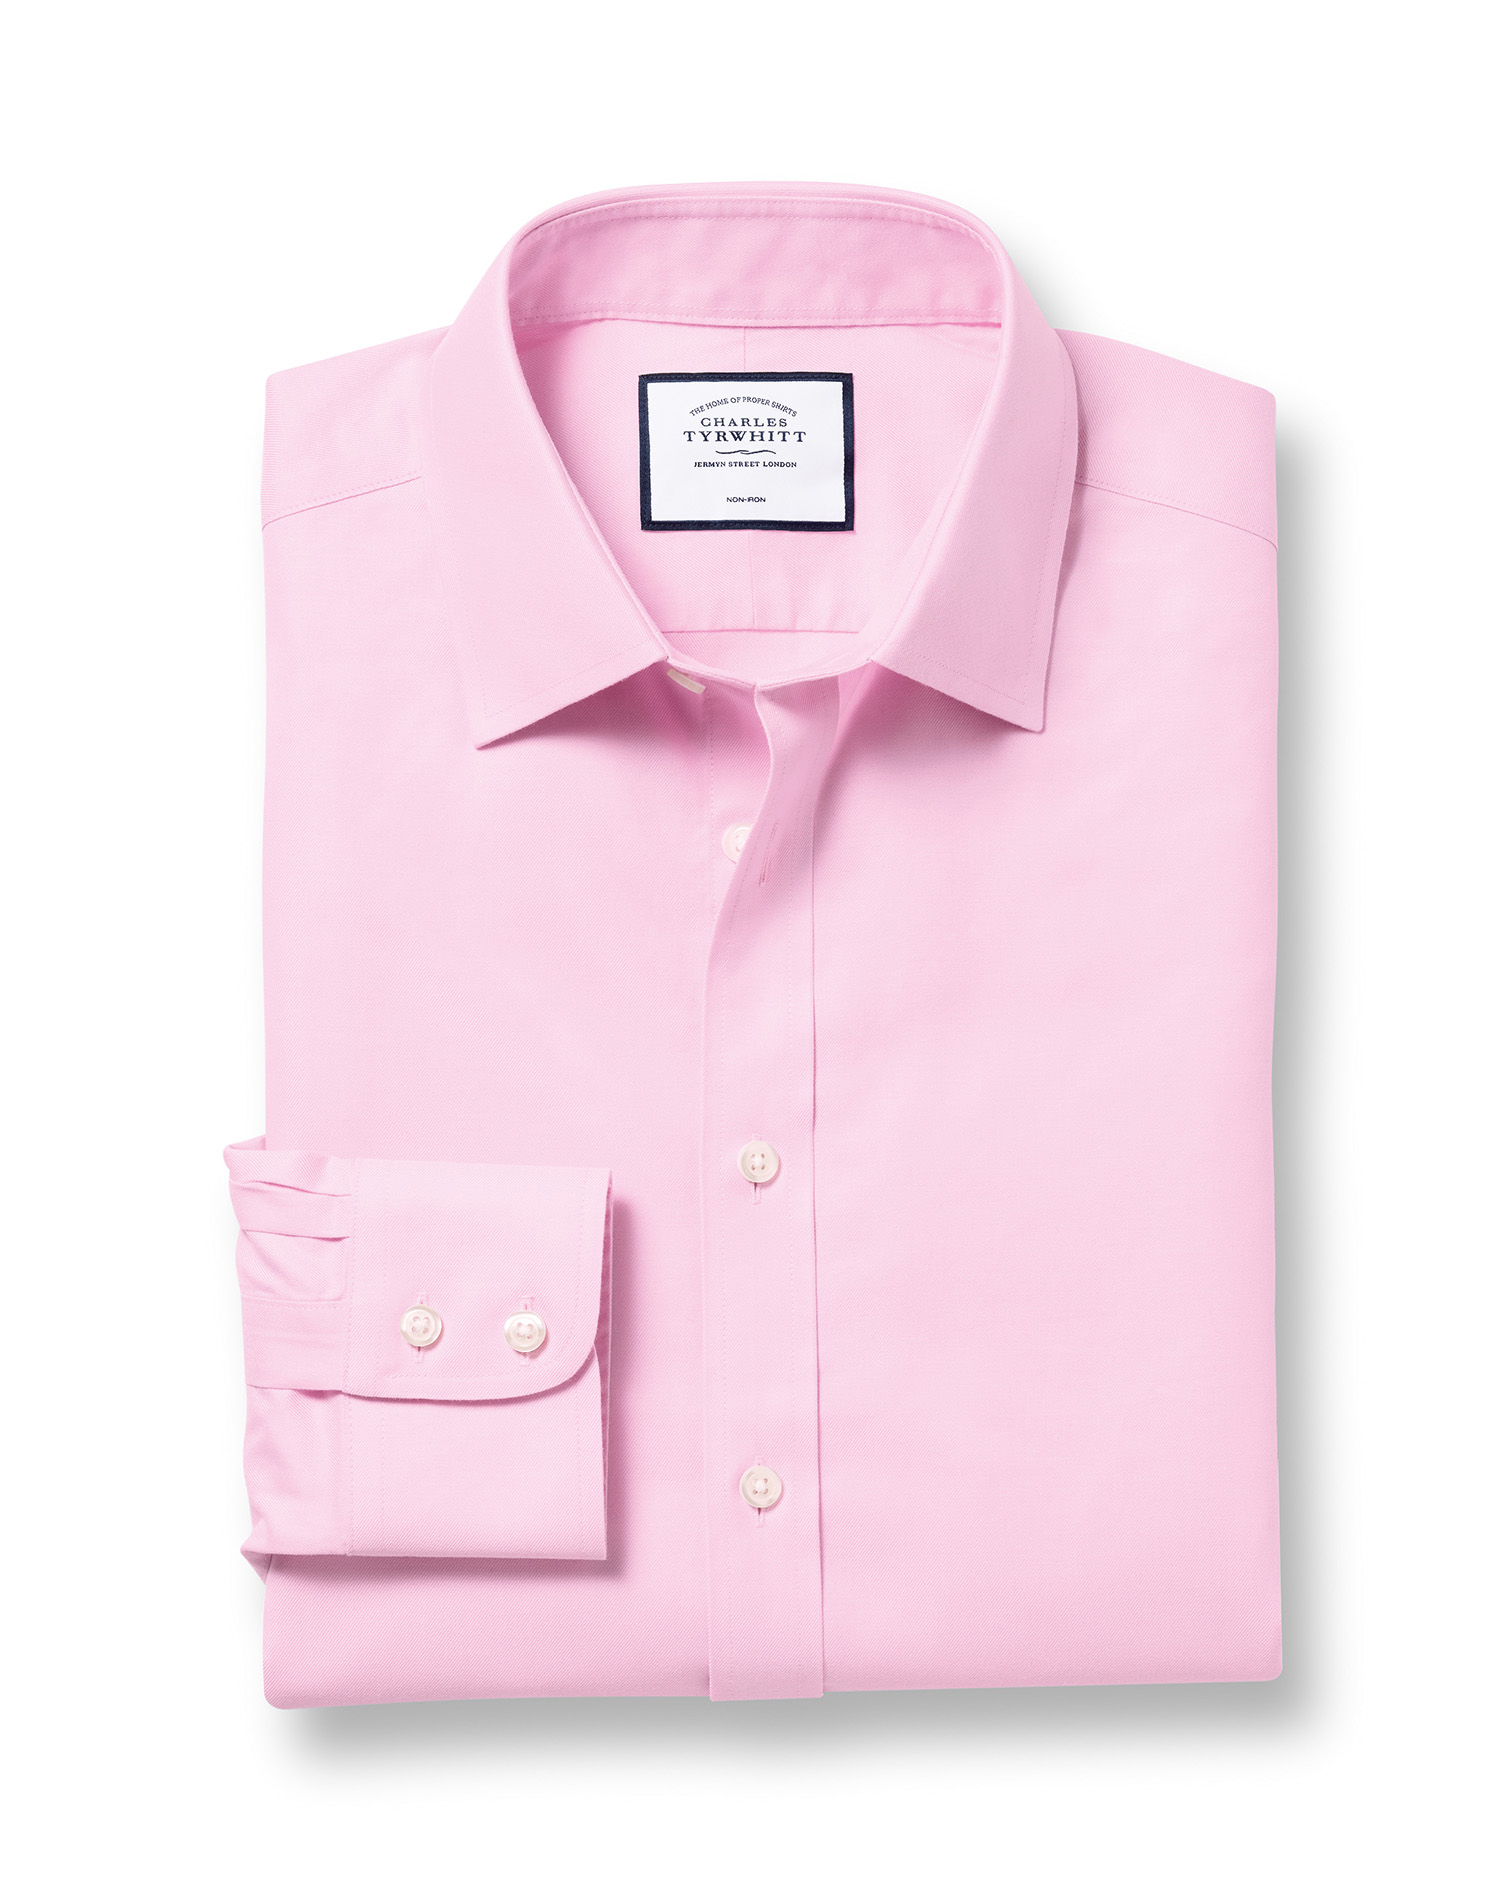 Slim Fit Non-Iron Twill Pink Cotton Formal Shirt Single Cuff Size 16.5/36 by Charles Tyrwhitt